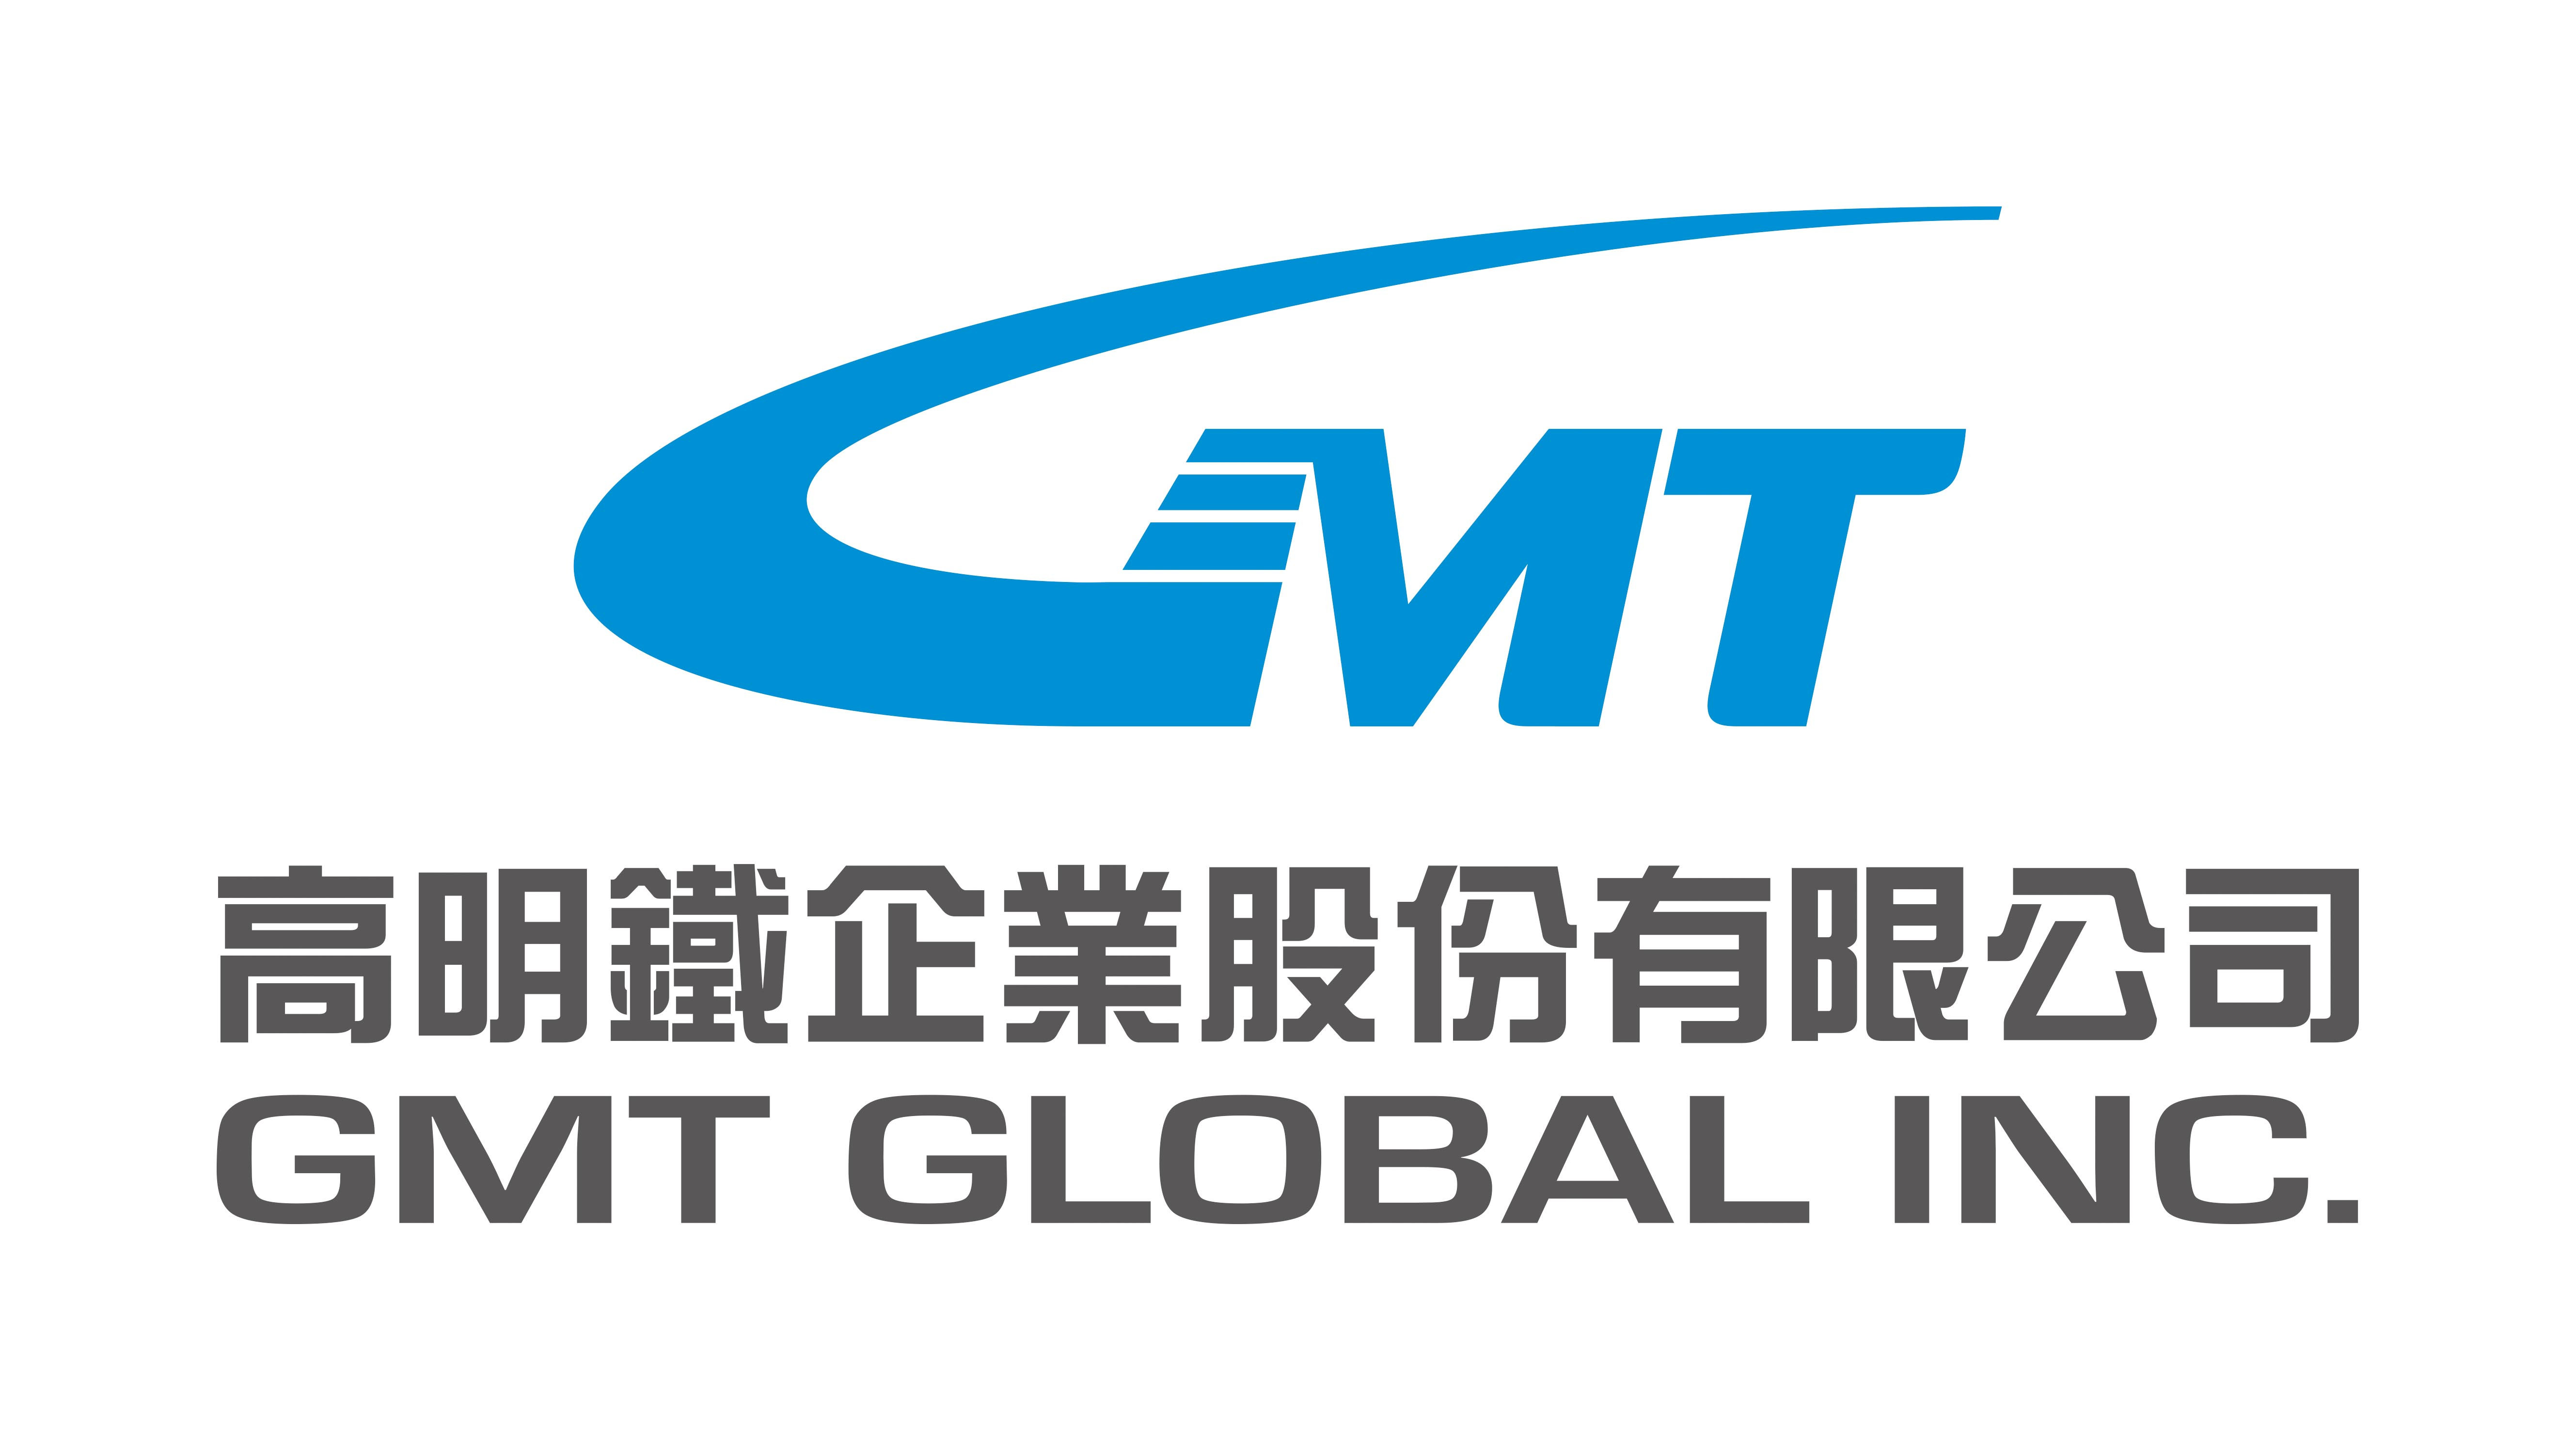 GMT Global Inc.